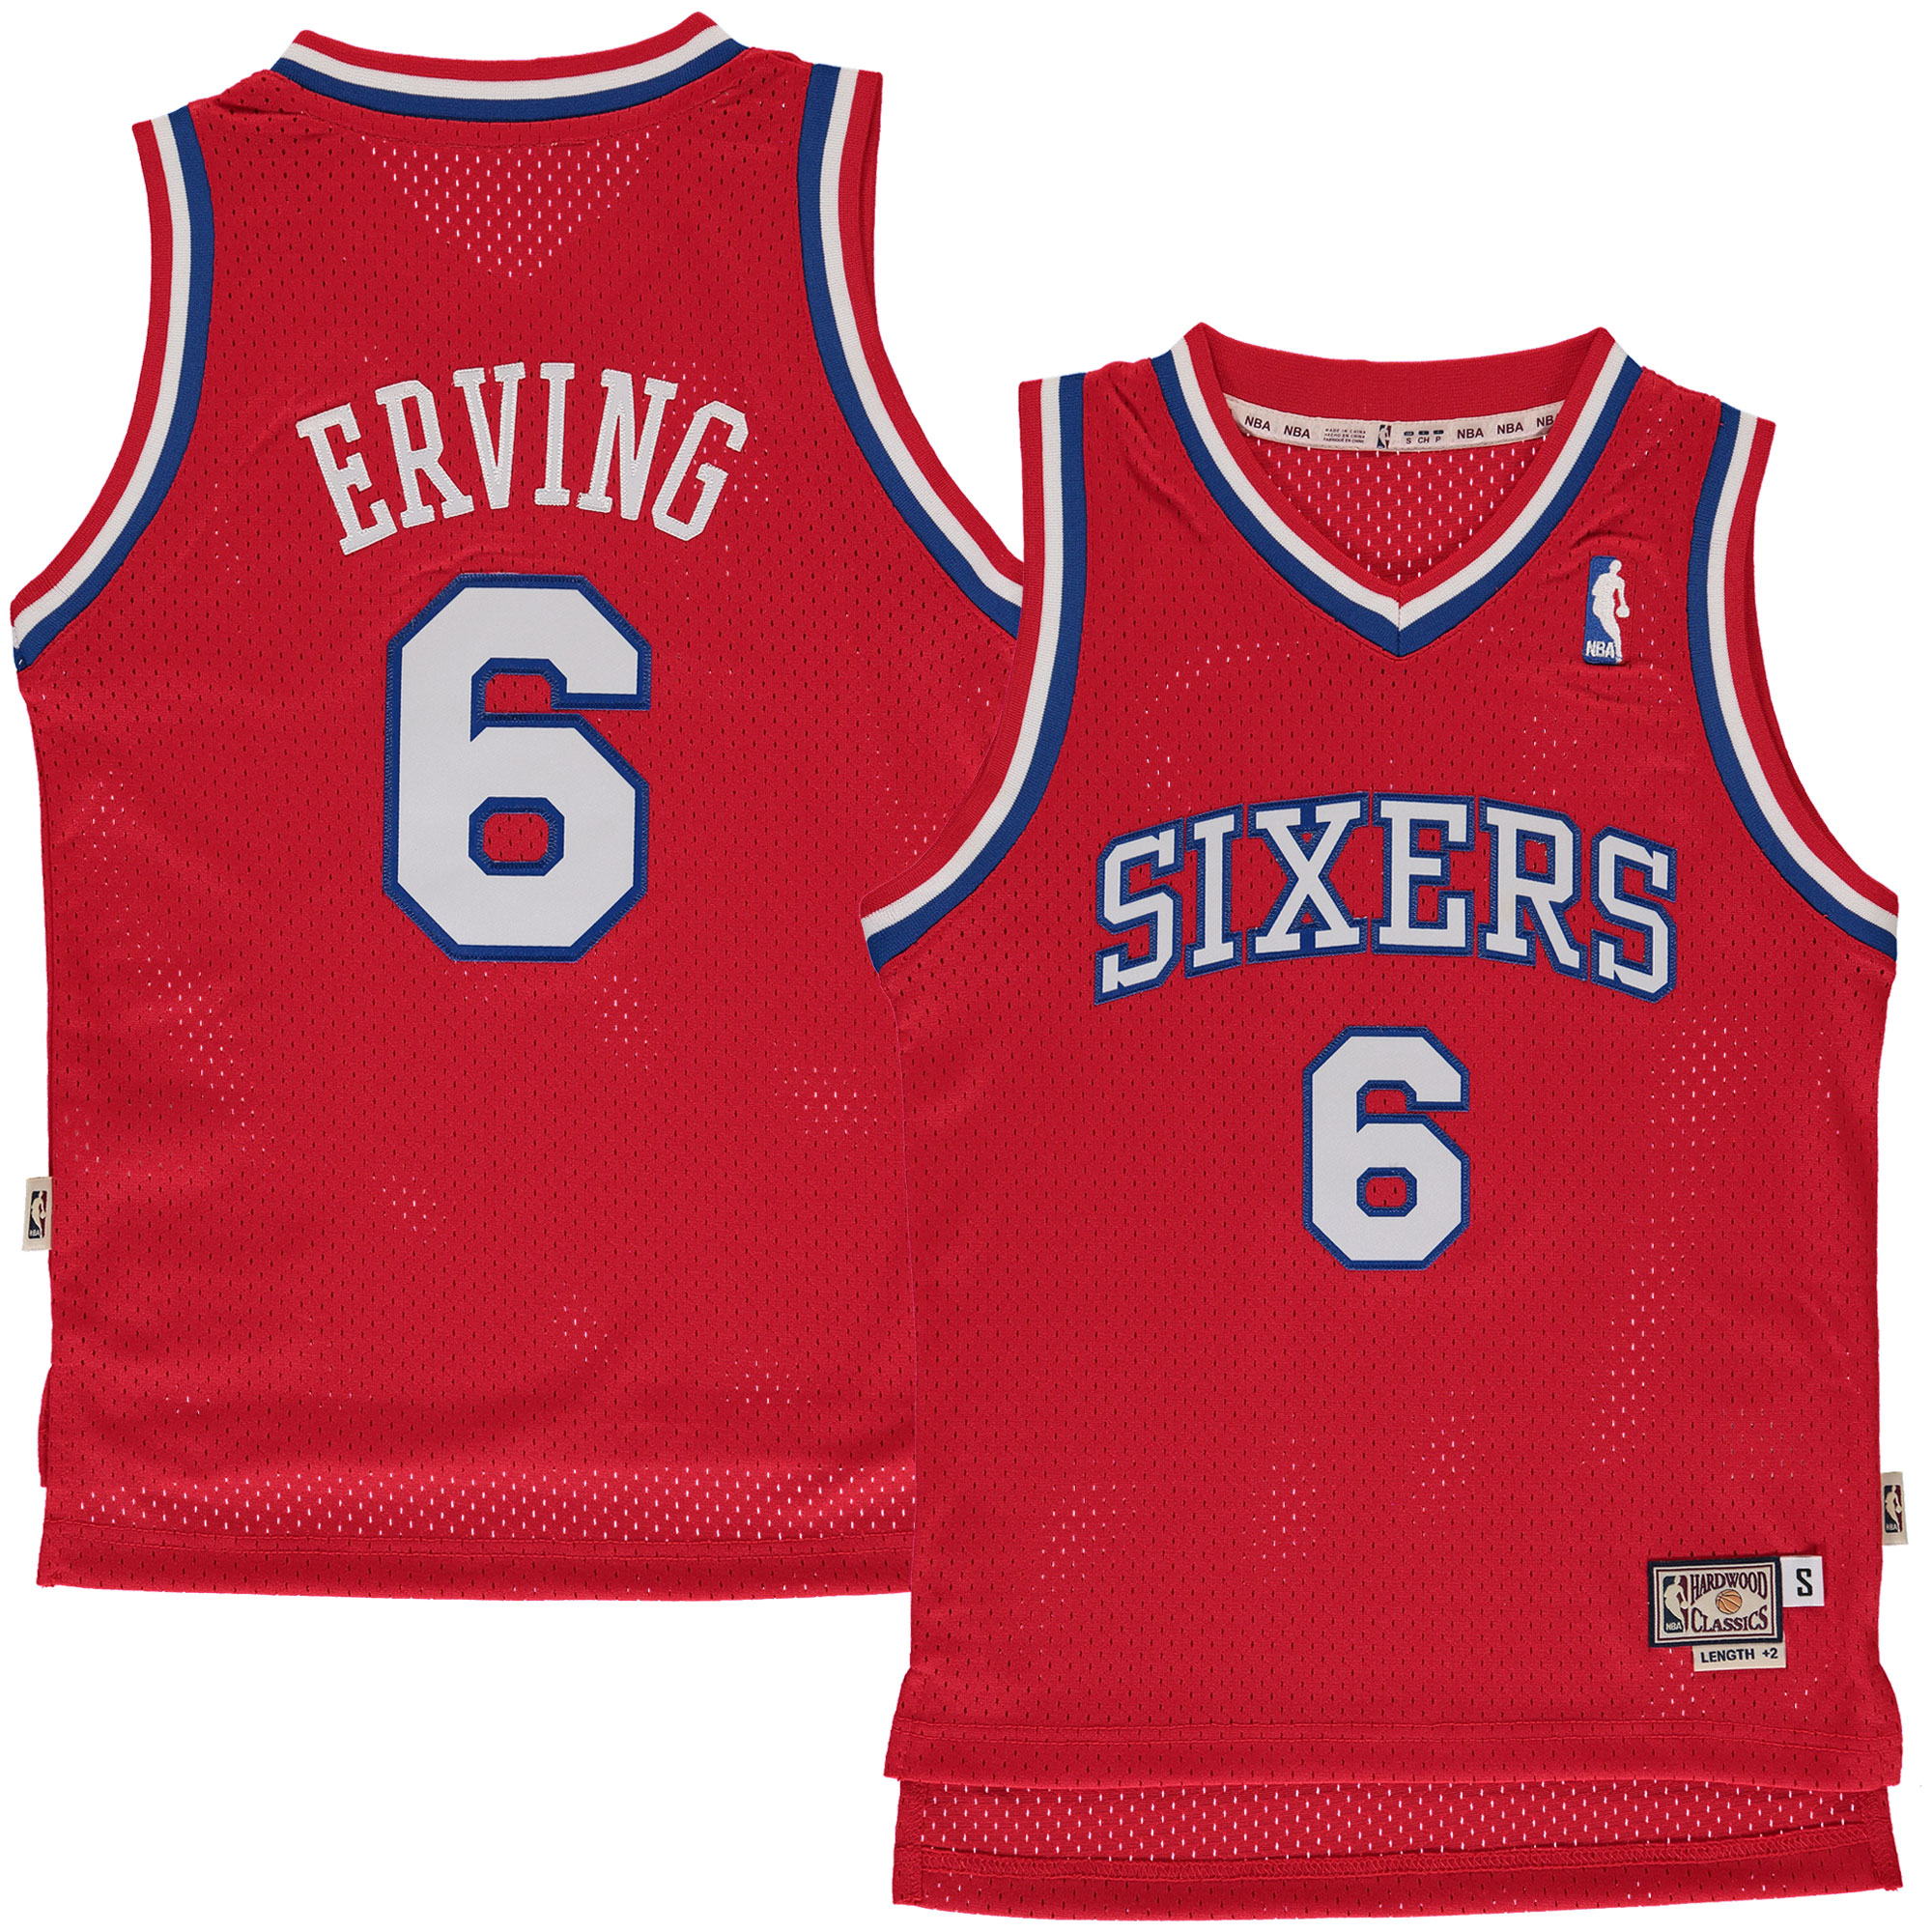 Julius Erving Philadelphia 76ers Mitchell & Ness Youth Hardwood Classics Swingman Jersey - Red